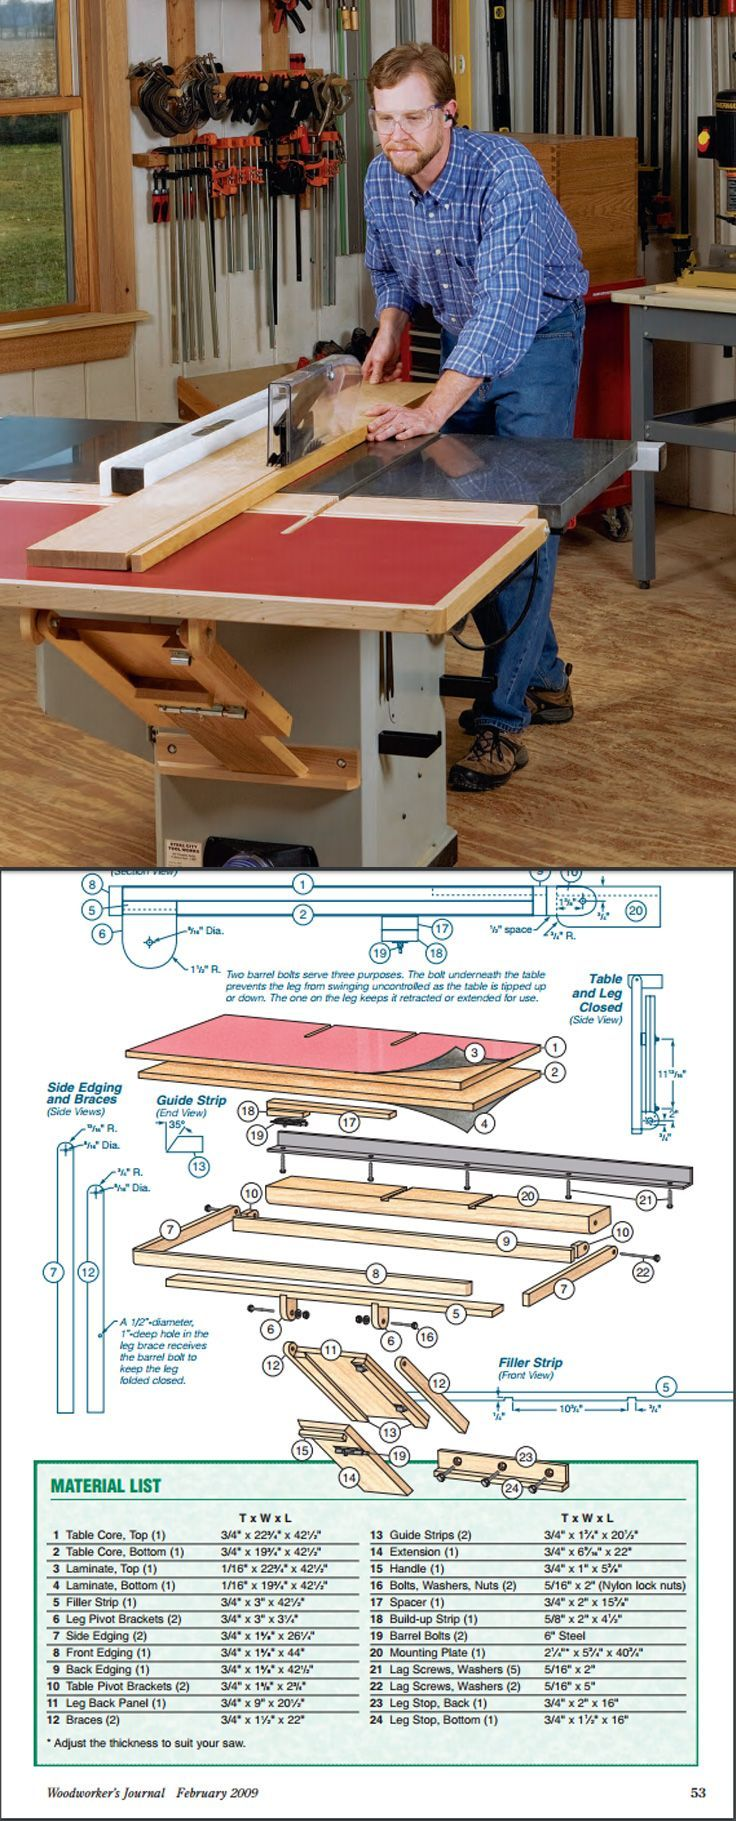 8692a75b88e2171f5116c7cf67808d1e build a folding outfeed table to mount on your table saw stand